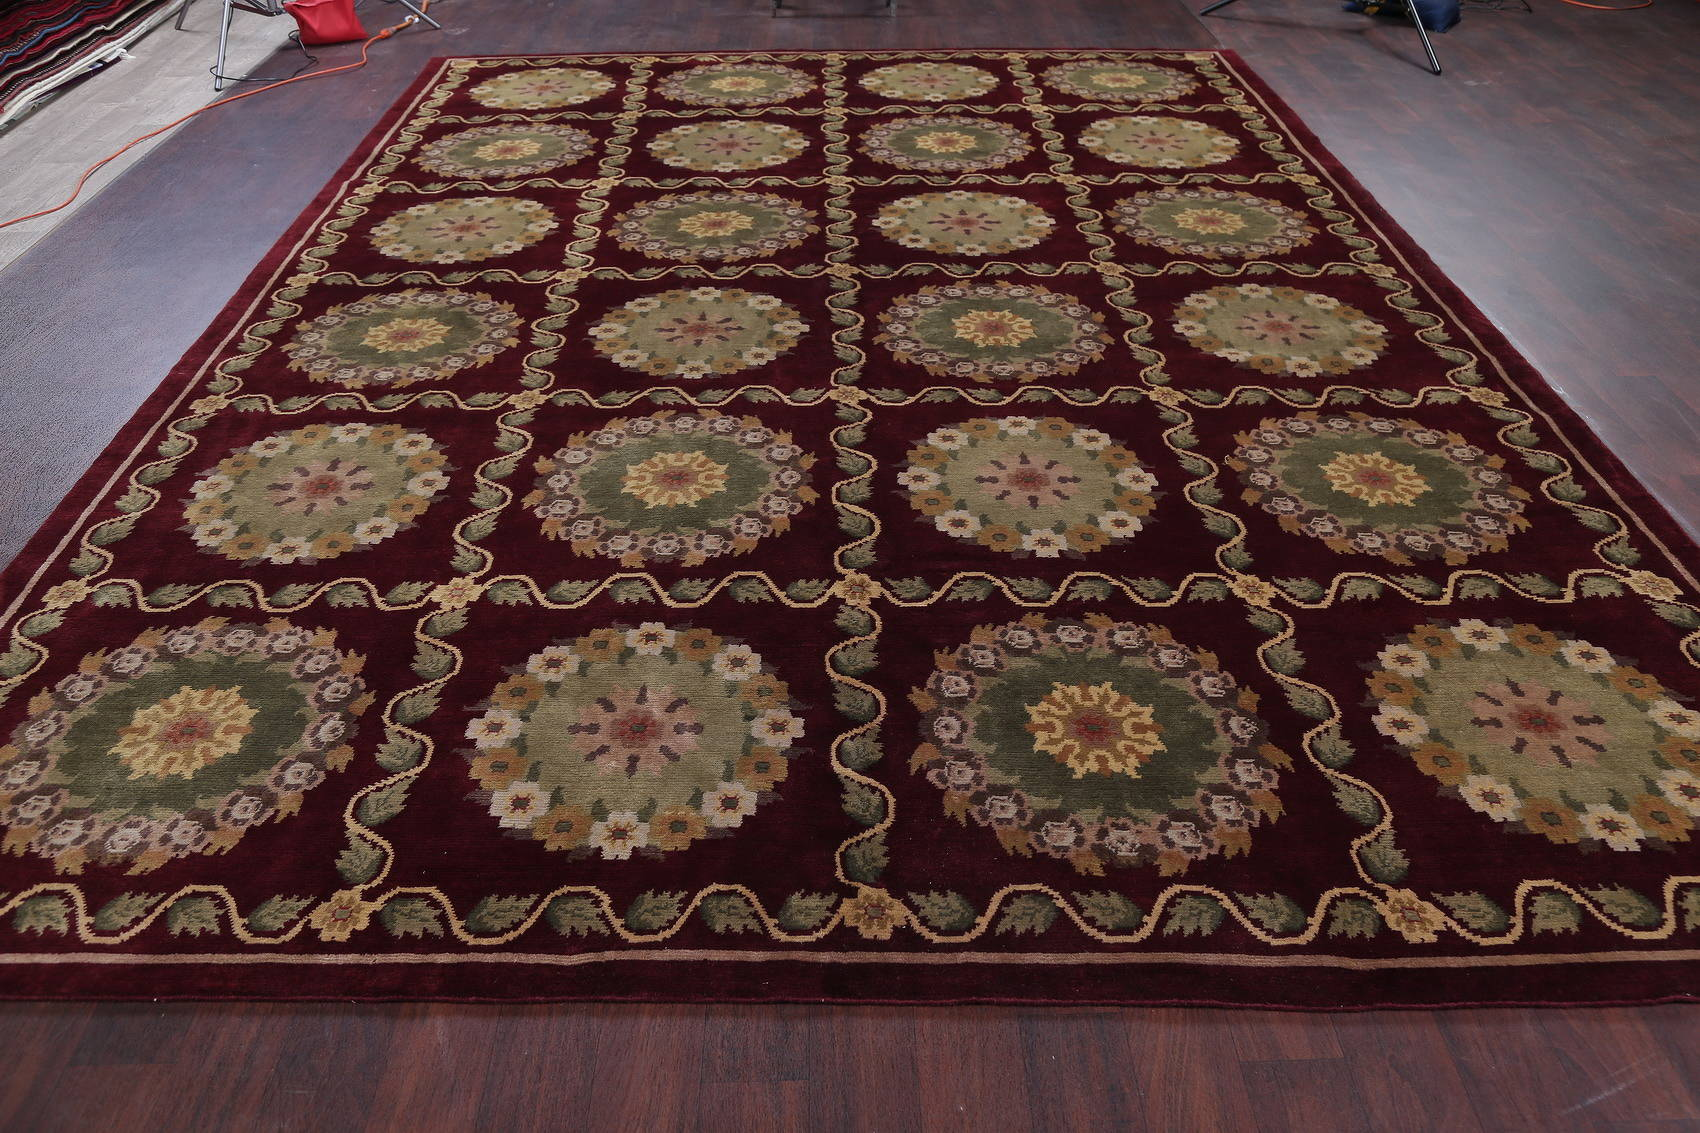 Geometric Red Aubusson Kathmando Oriental Hand-Knotted Area Rug 10x15